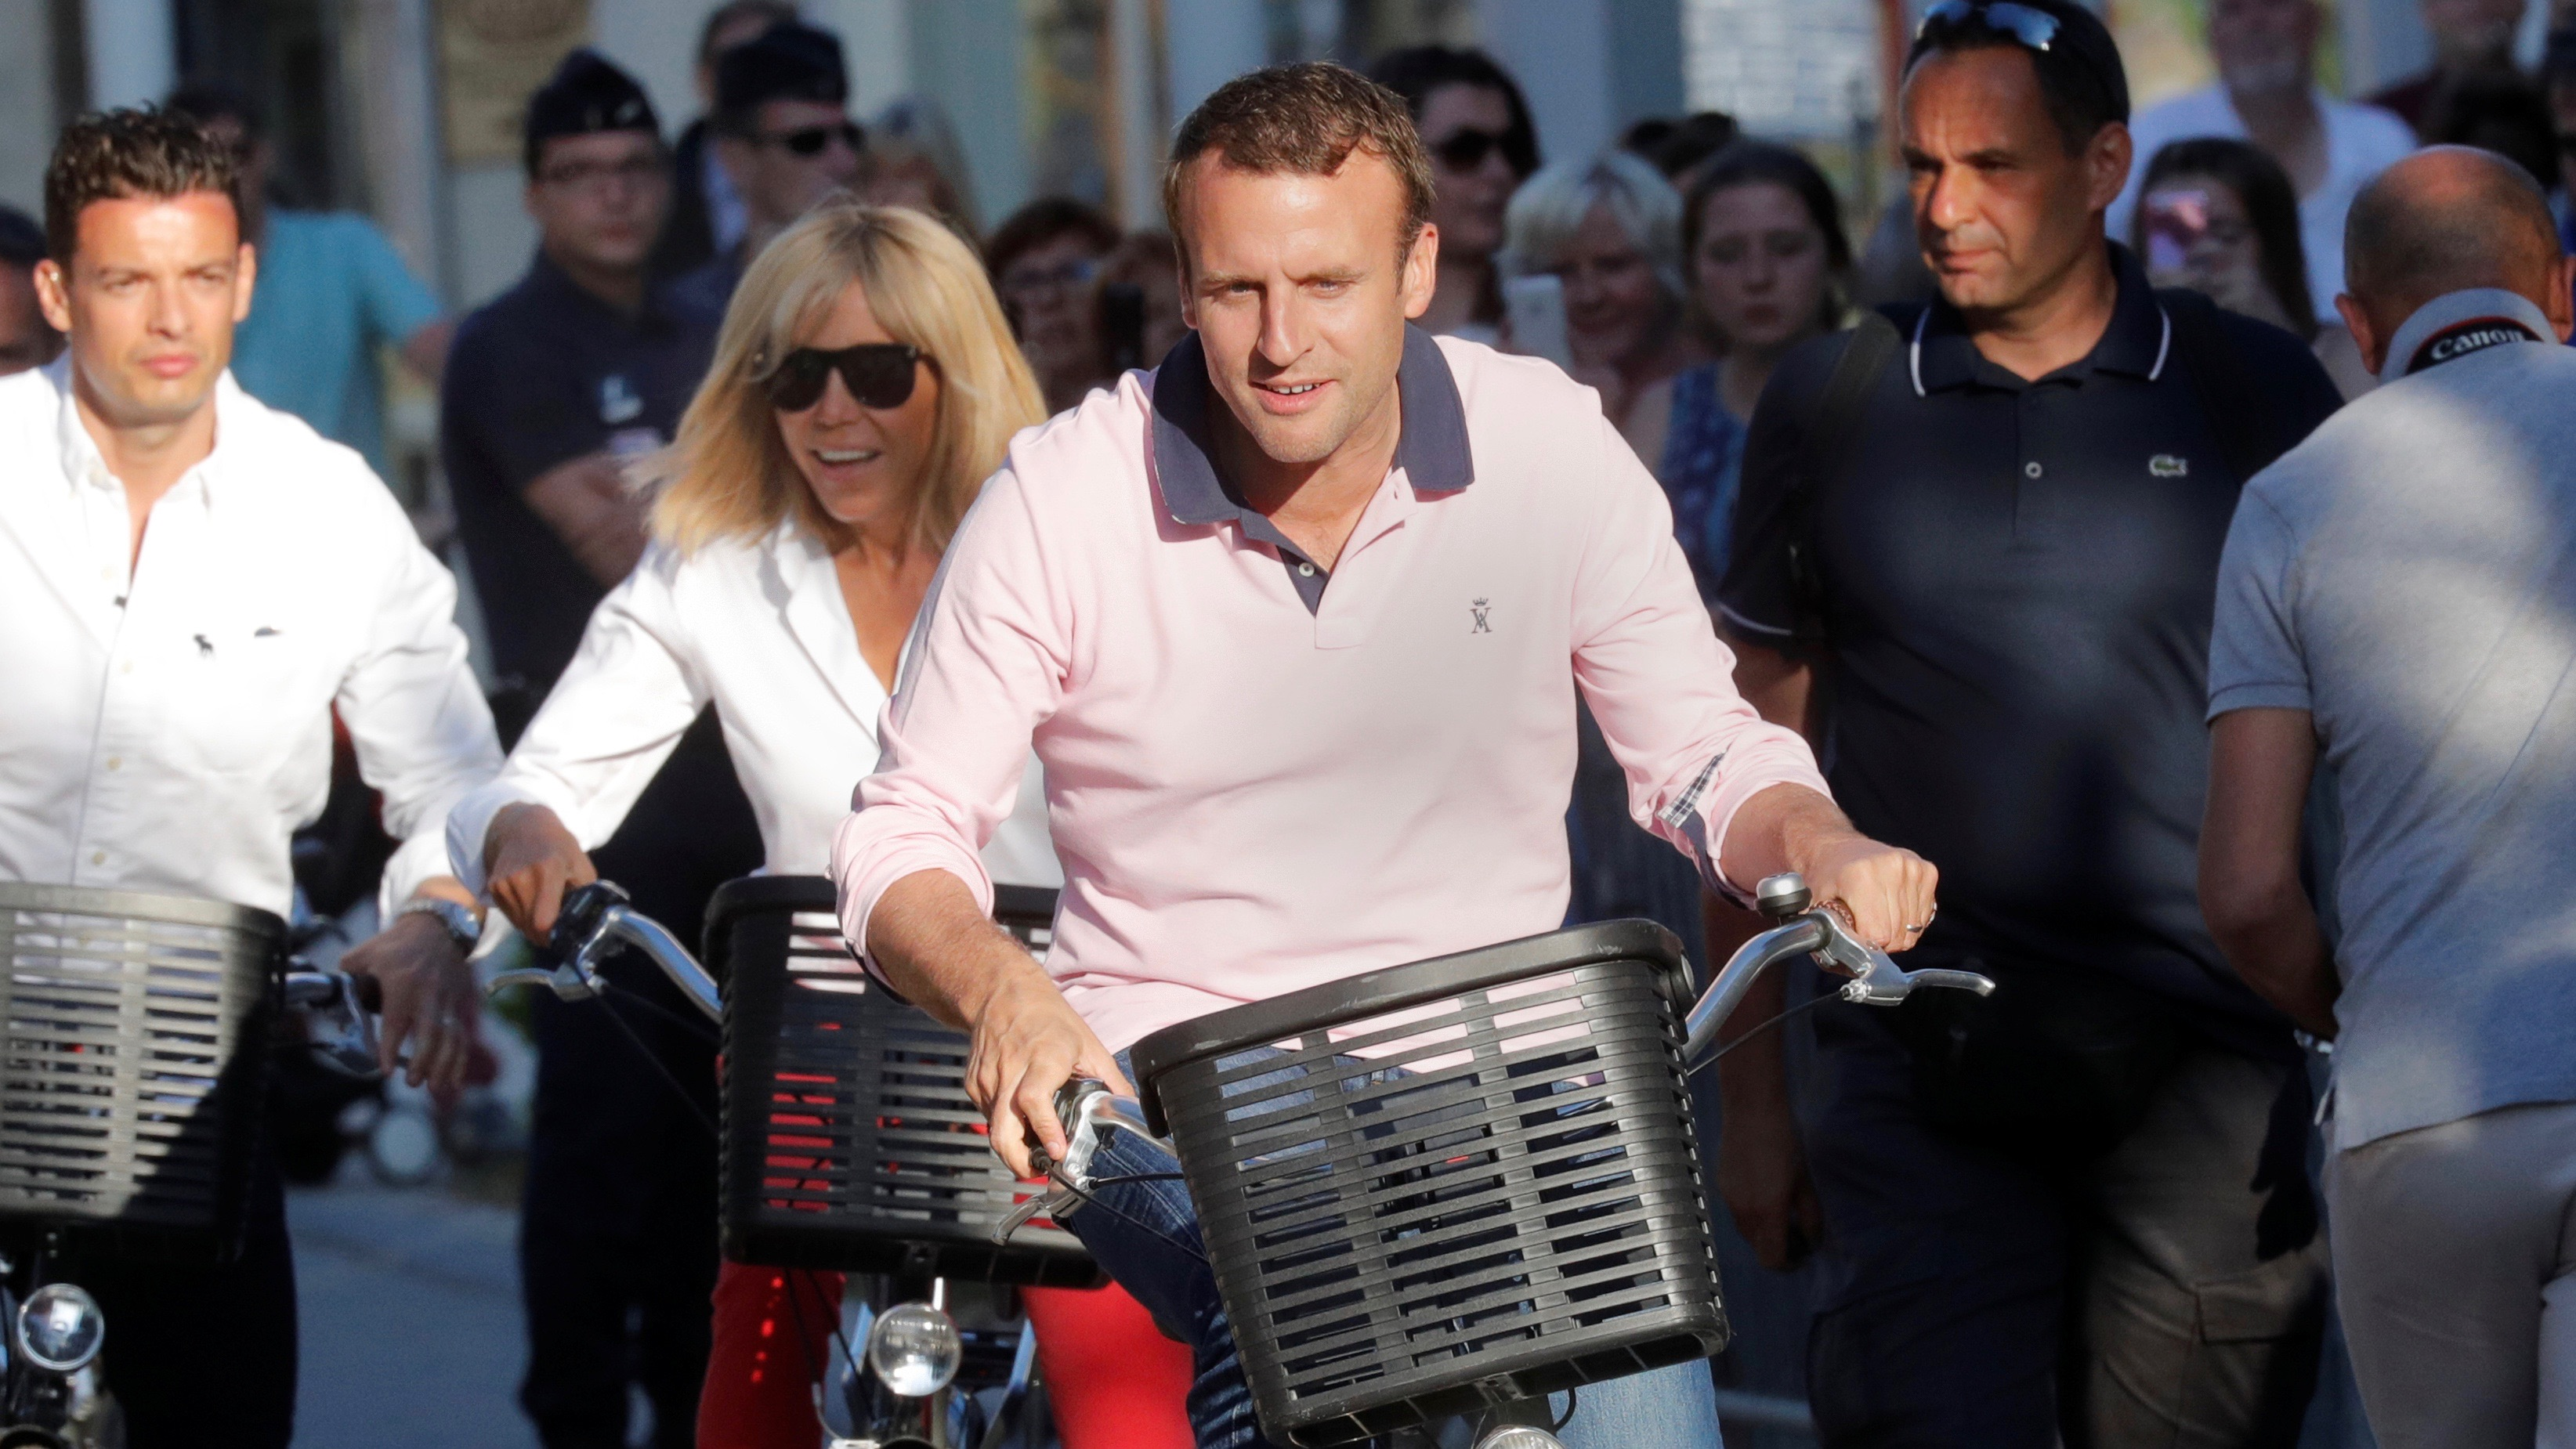 Macron and his wife on bicycles.